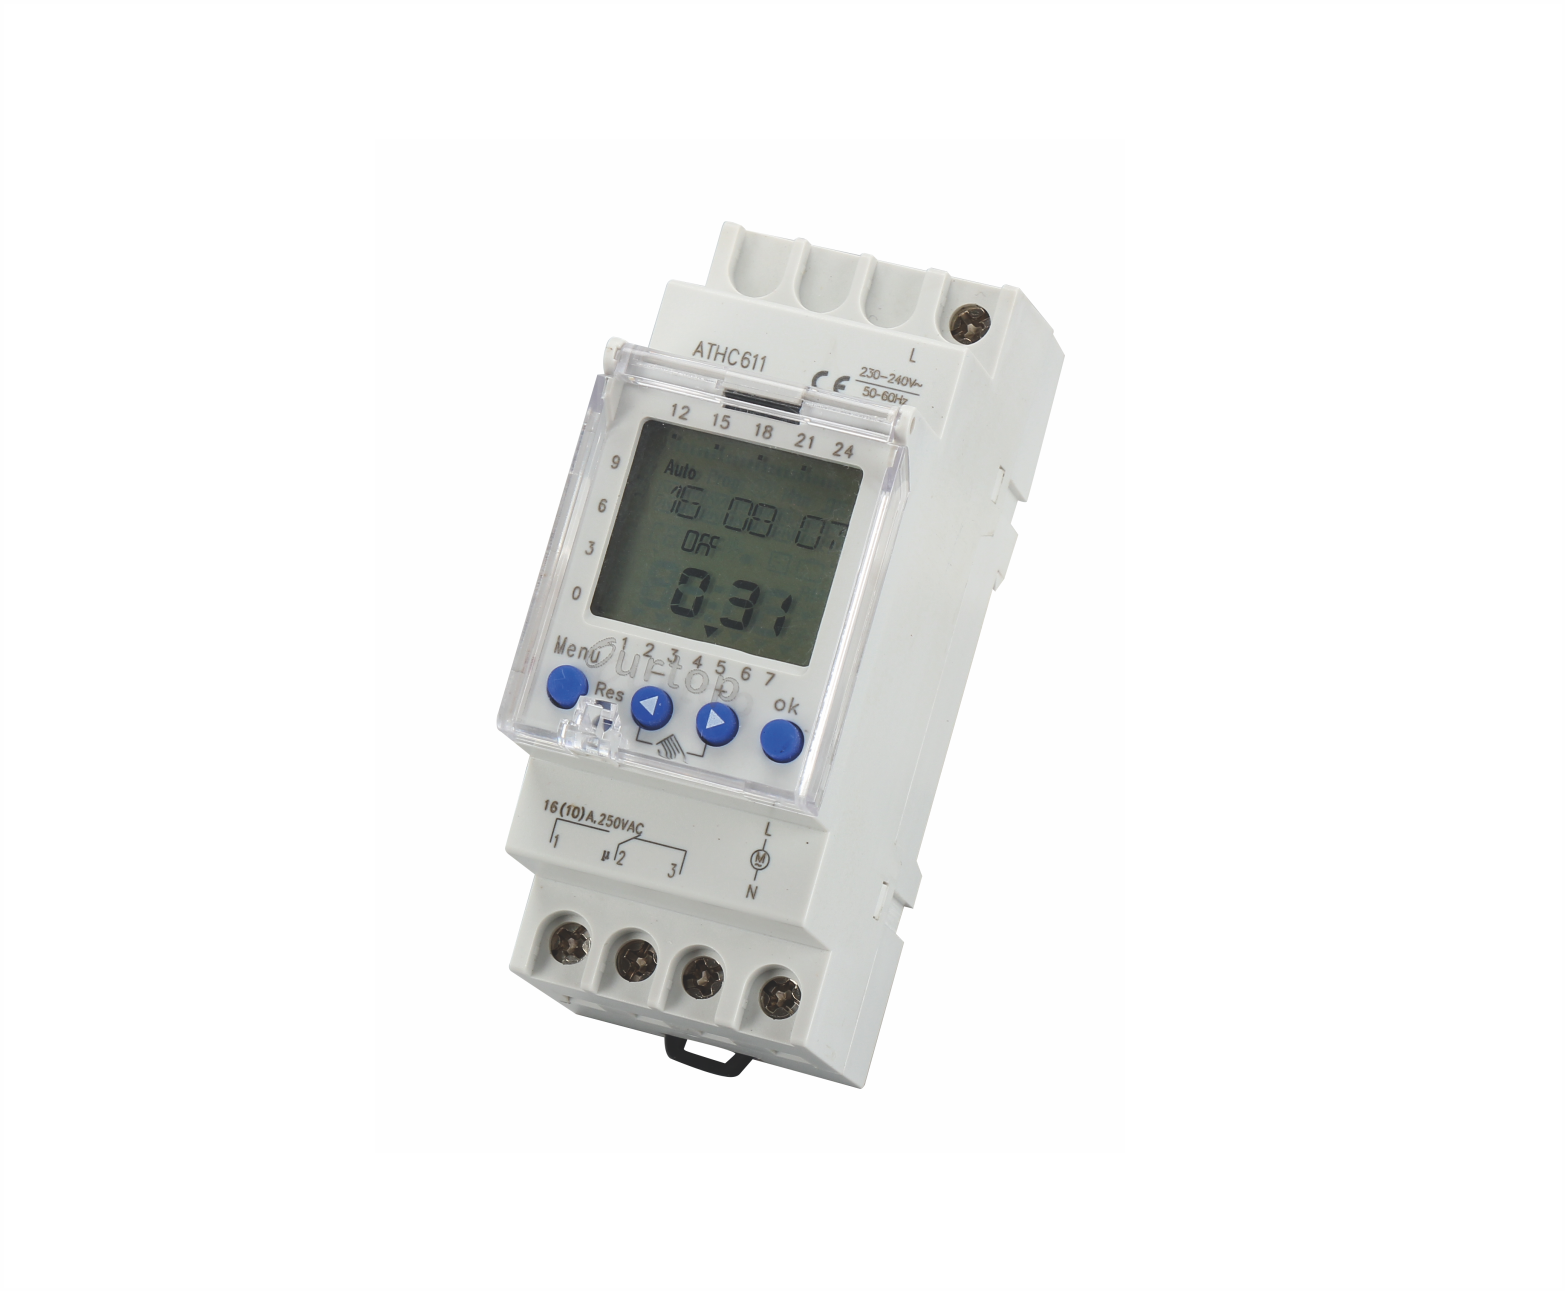 ATHC611 Digital Programmable Time Switch